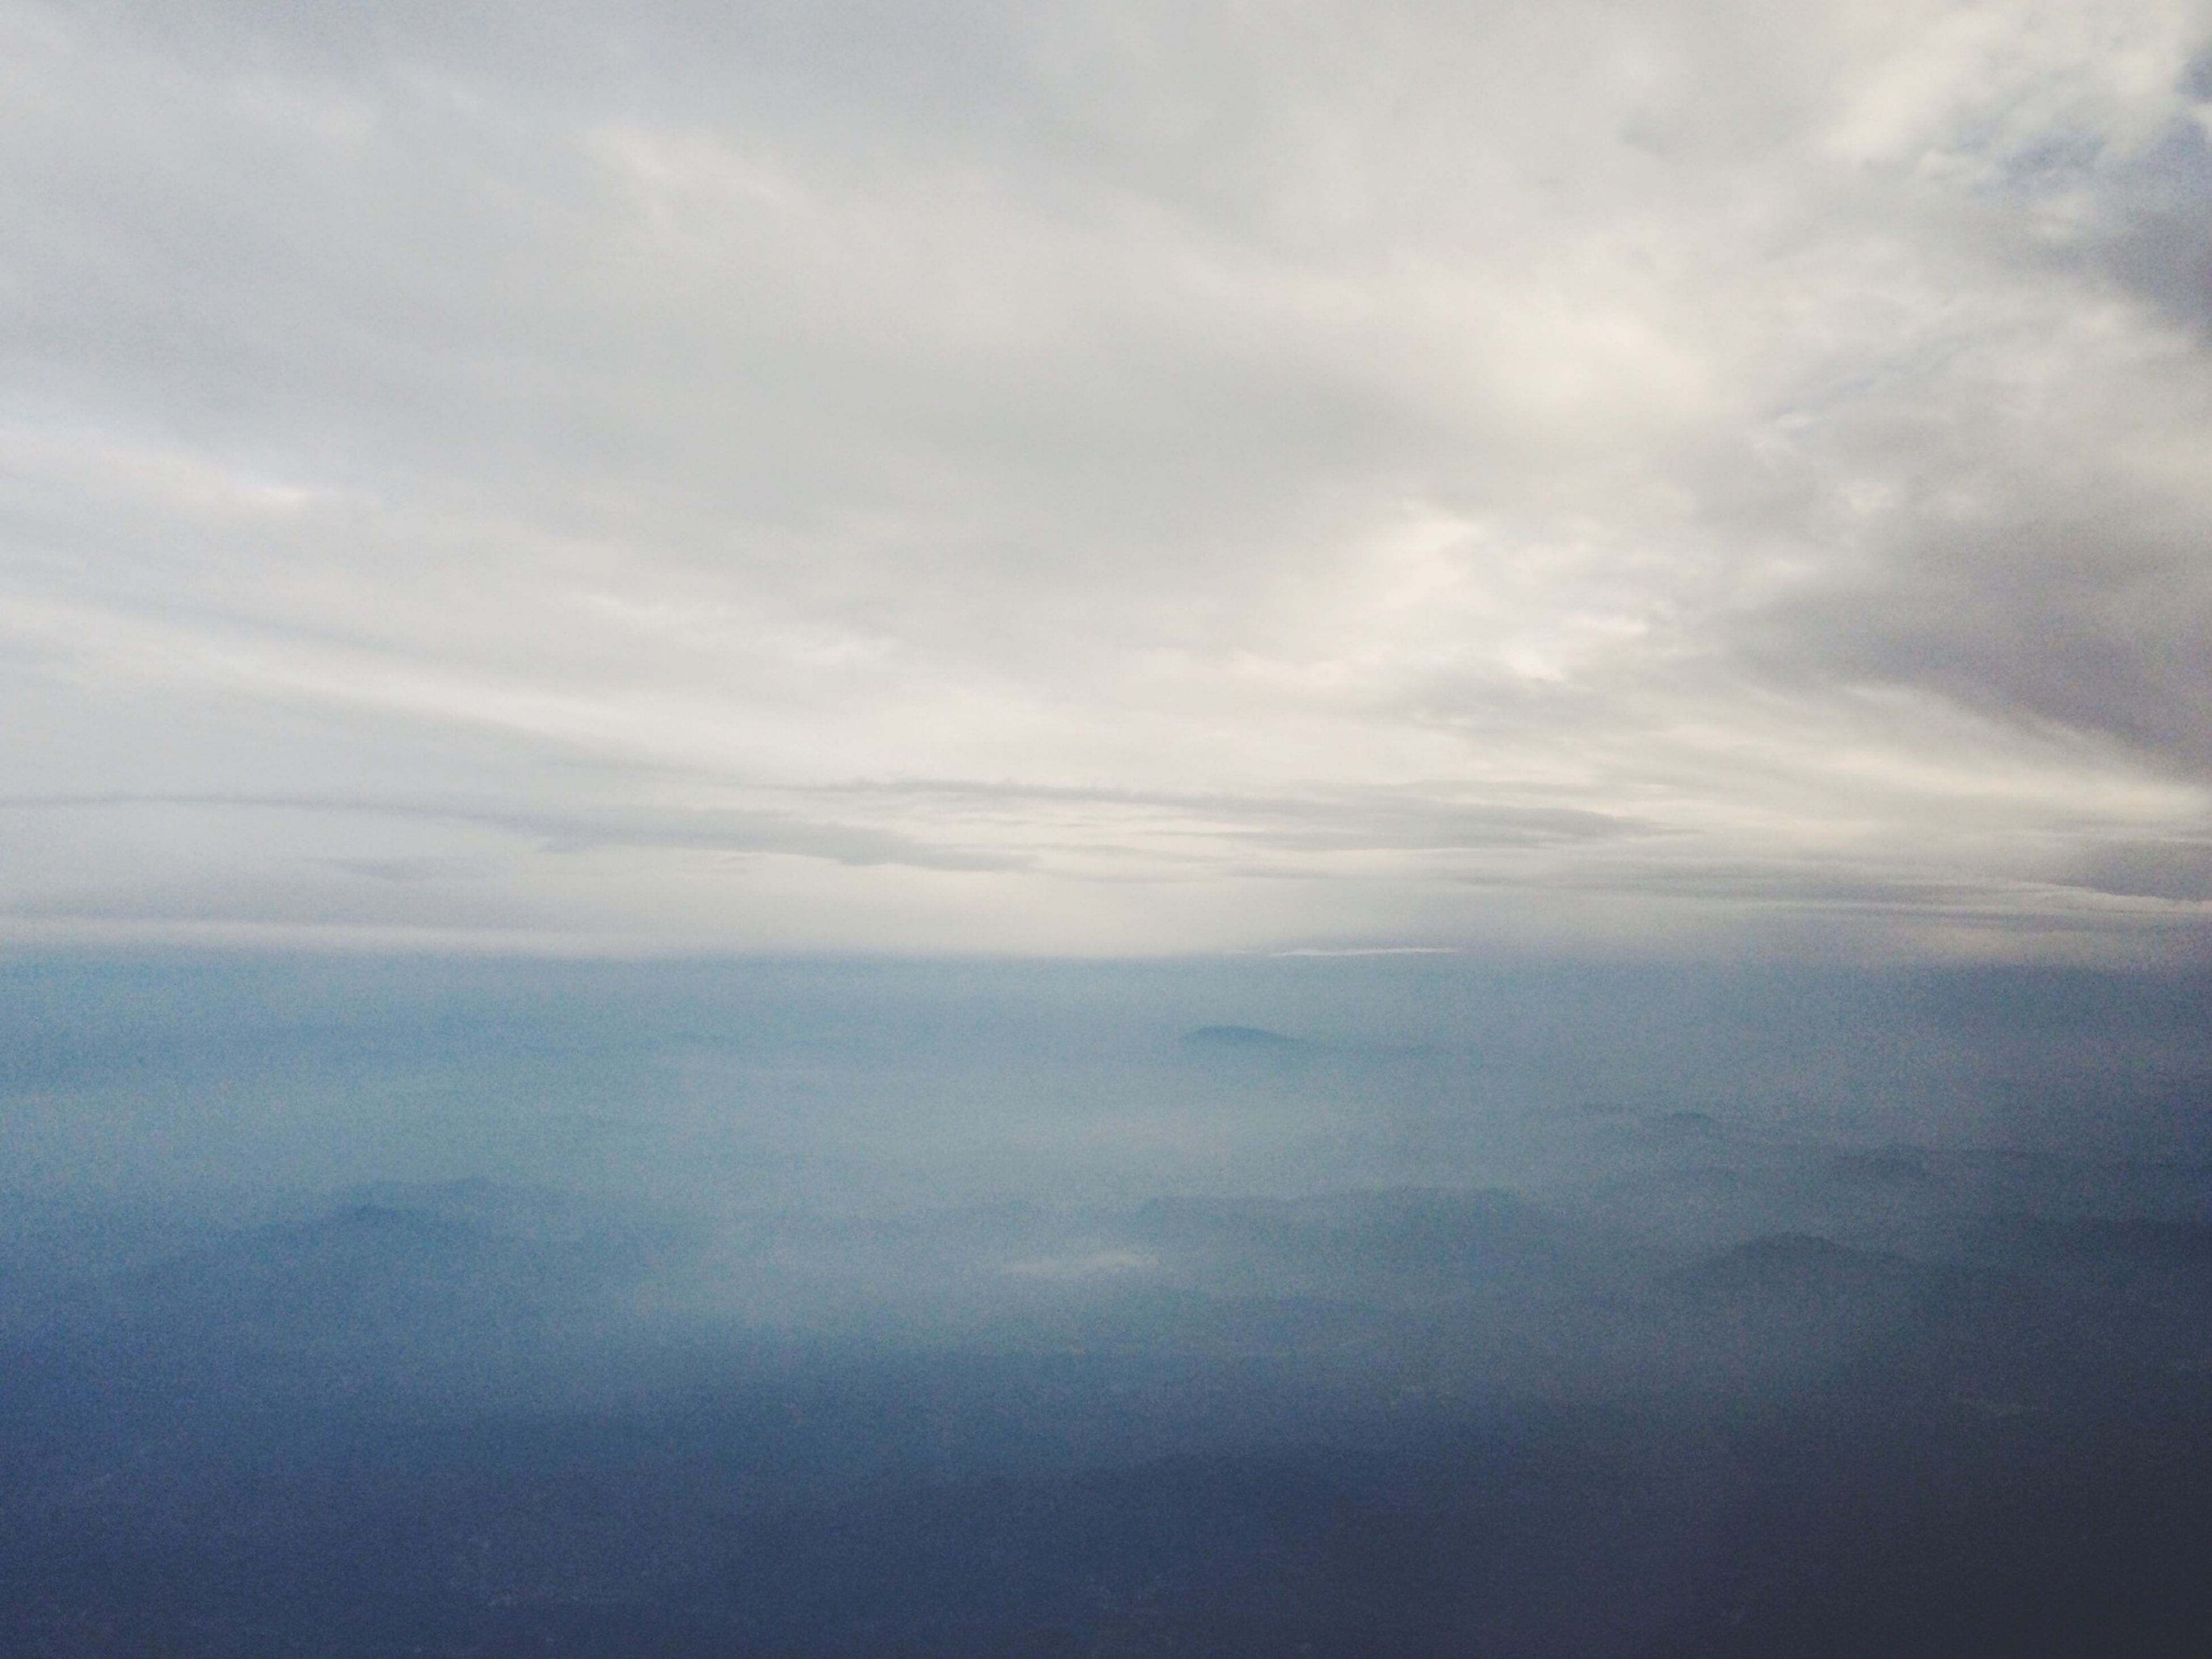 scenics, tranquil scene, tranquility, beauty in nature, sky, cloud - sky, nature, cloudy, aerial view, idyllic, cloudscape, weather, sea, cloud, day, no people, outdoors, landscape, water, waterfront